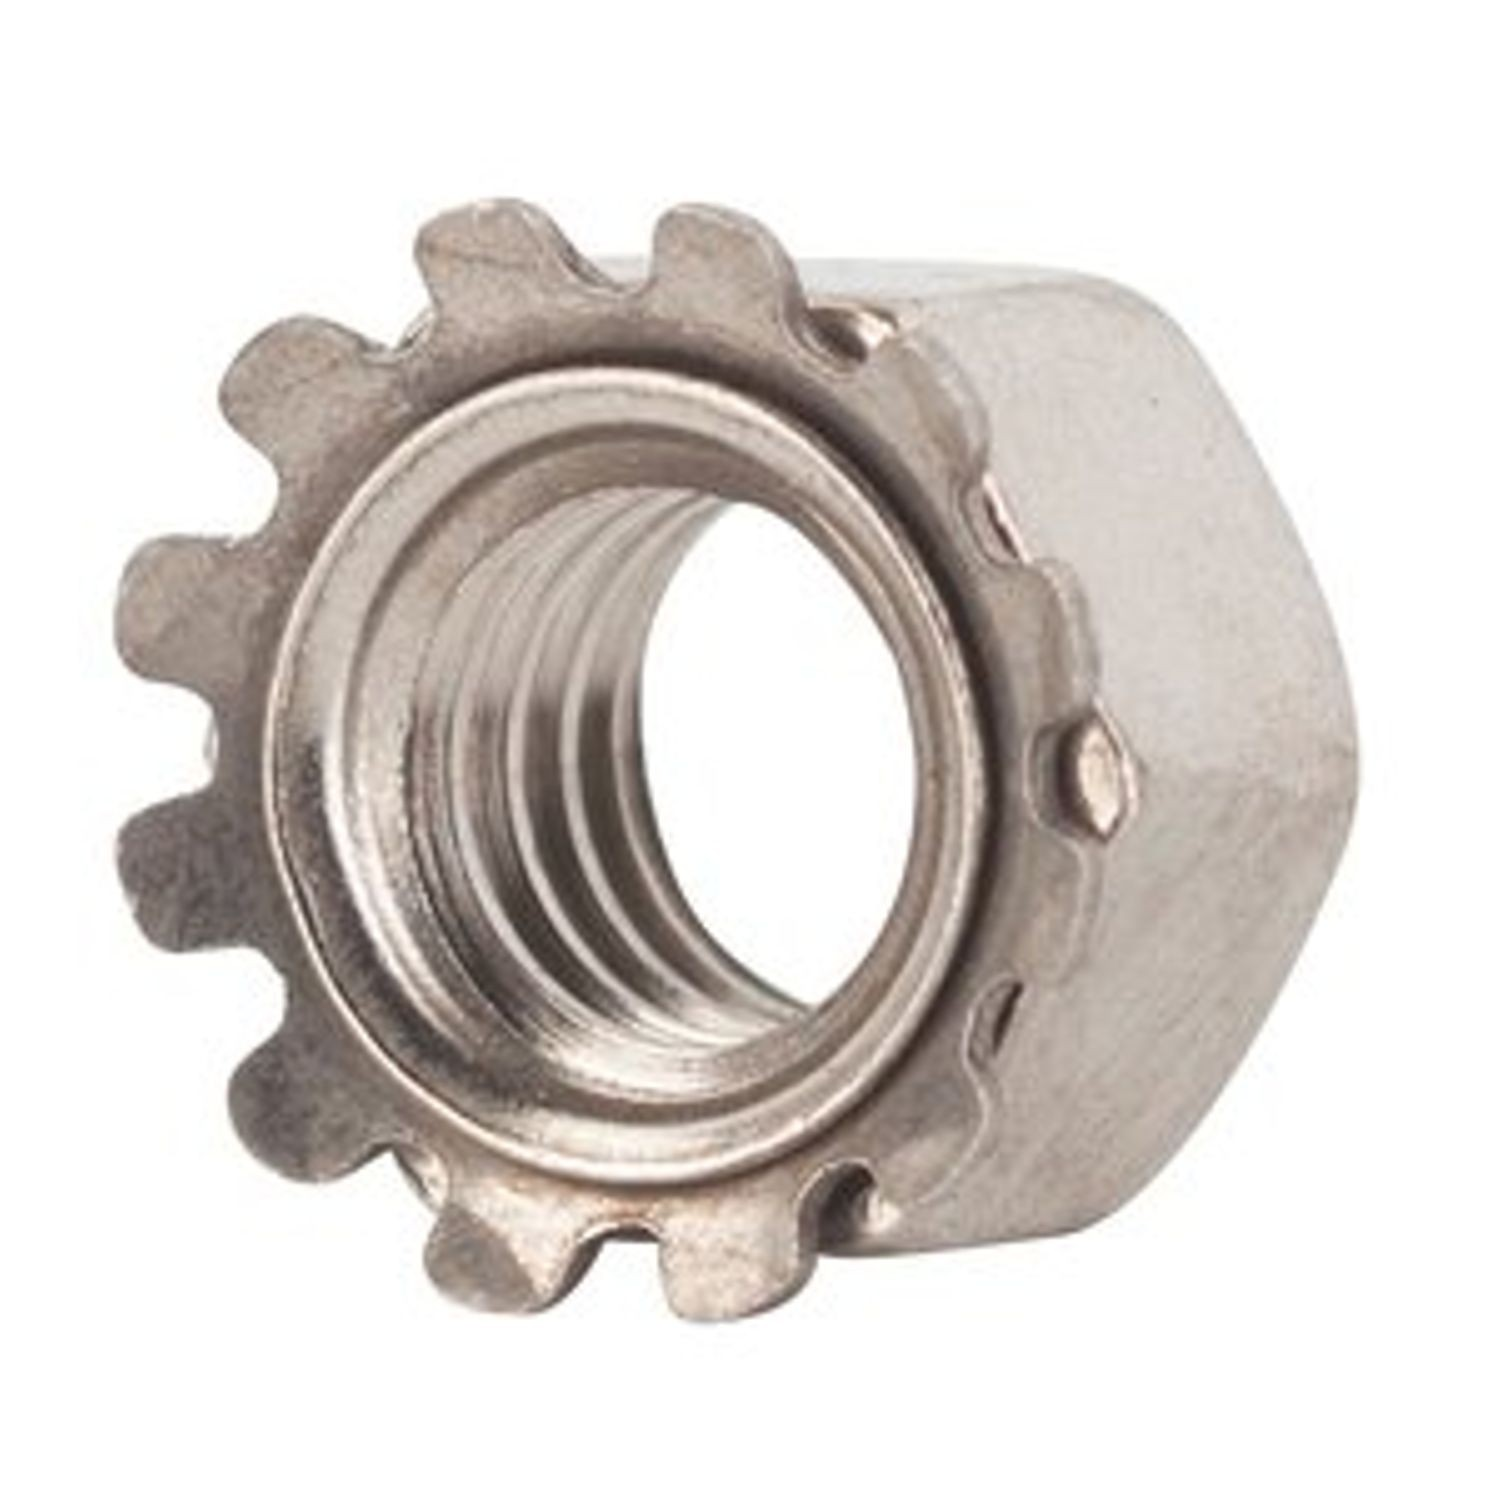 "1/4"" - 20 STAINLESS STEEL KEPS NUT"